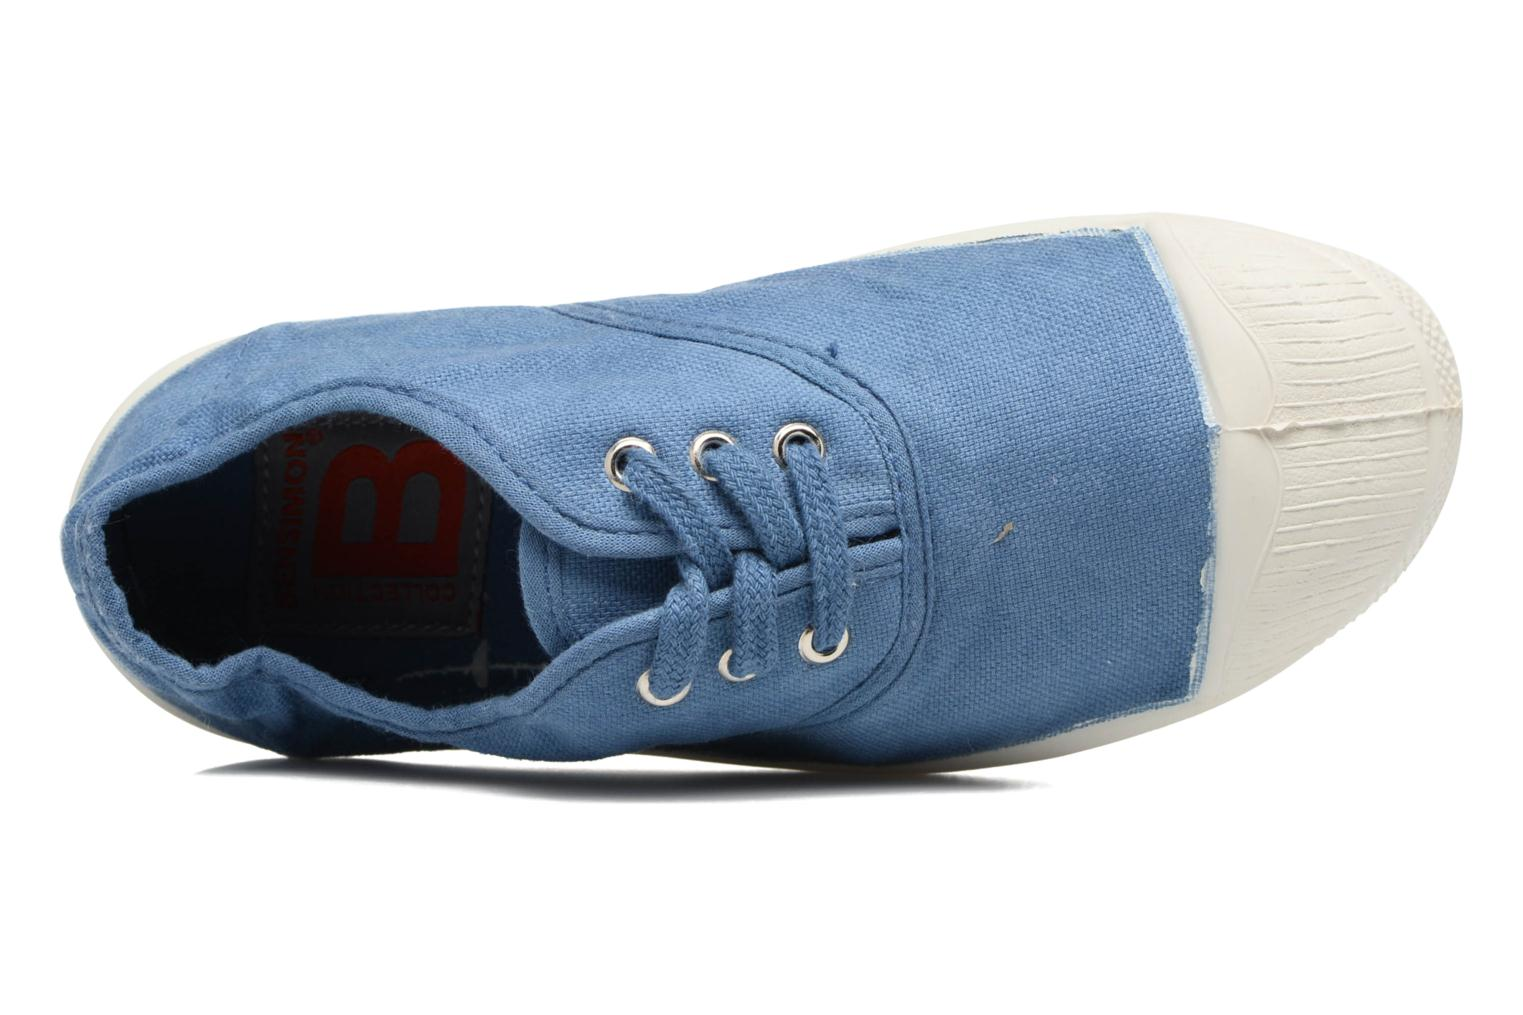 Tennis Lacets E Denim 2